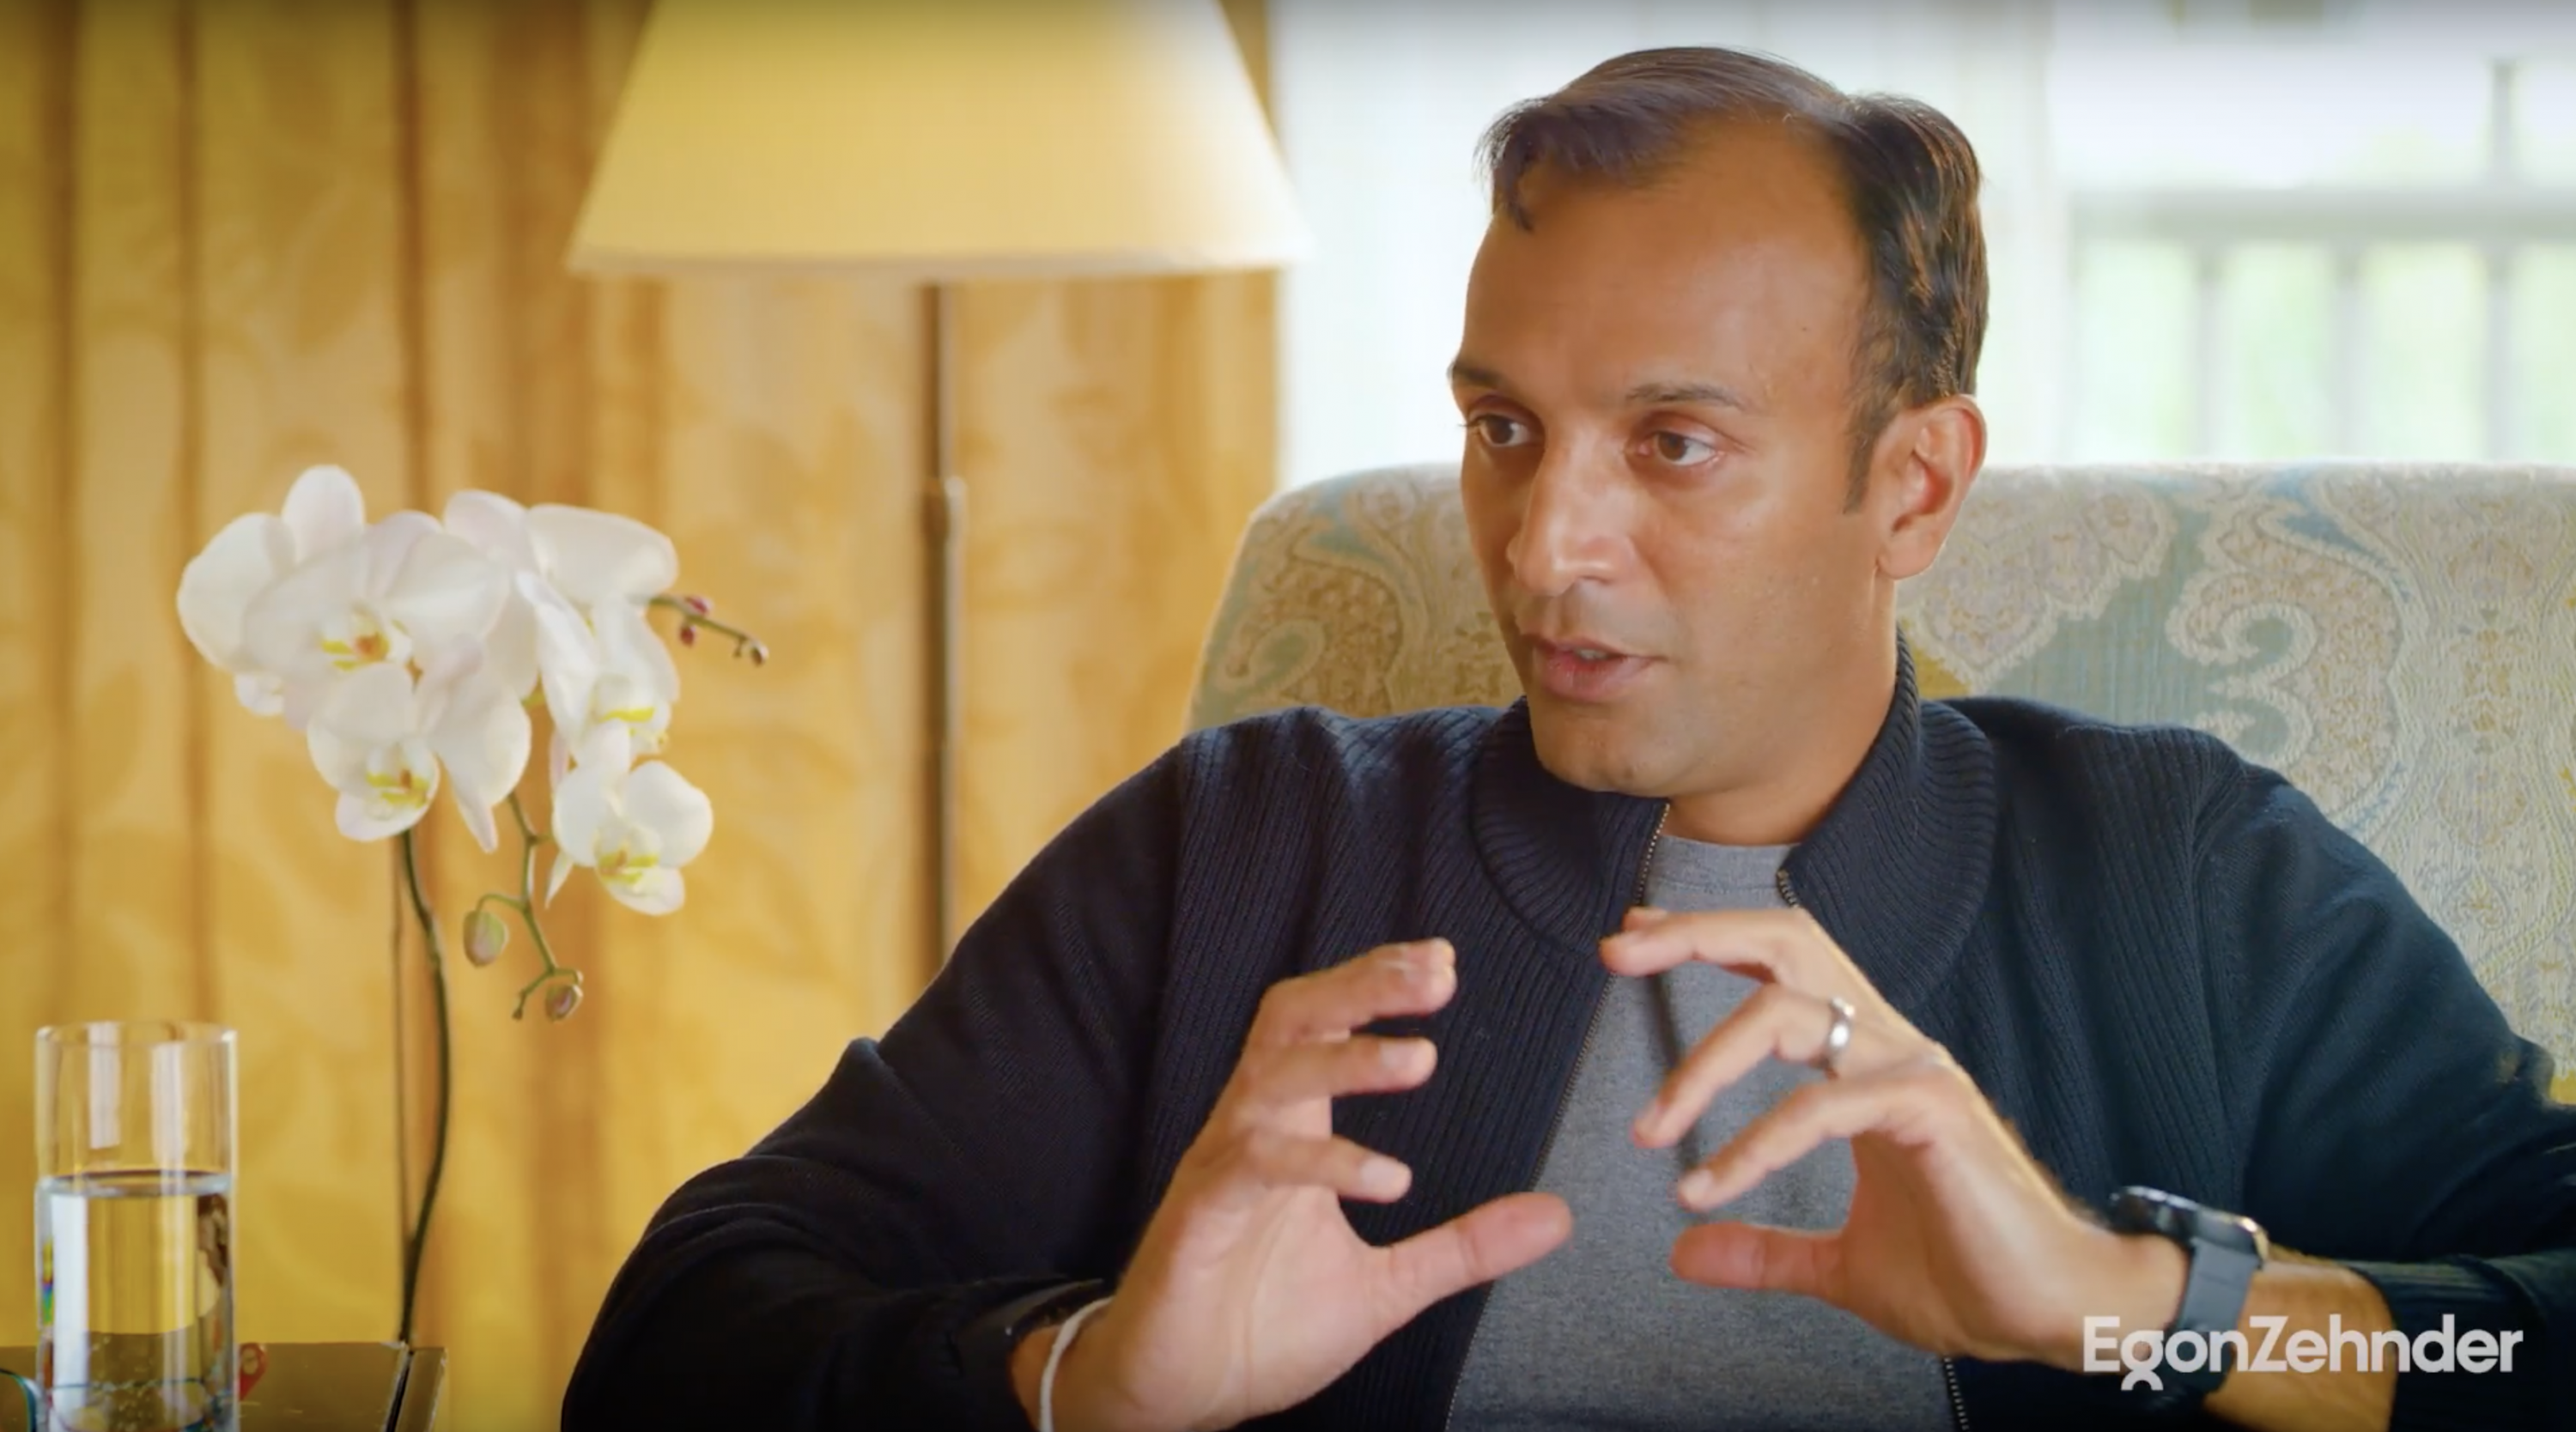 Egon Zehnder's Ricardo Sunderland spoke with mathematician and computer scientist DJ Patil, former Chief Data Scientist of the United States Office of Science and Technology Policy, on his EBP experience.